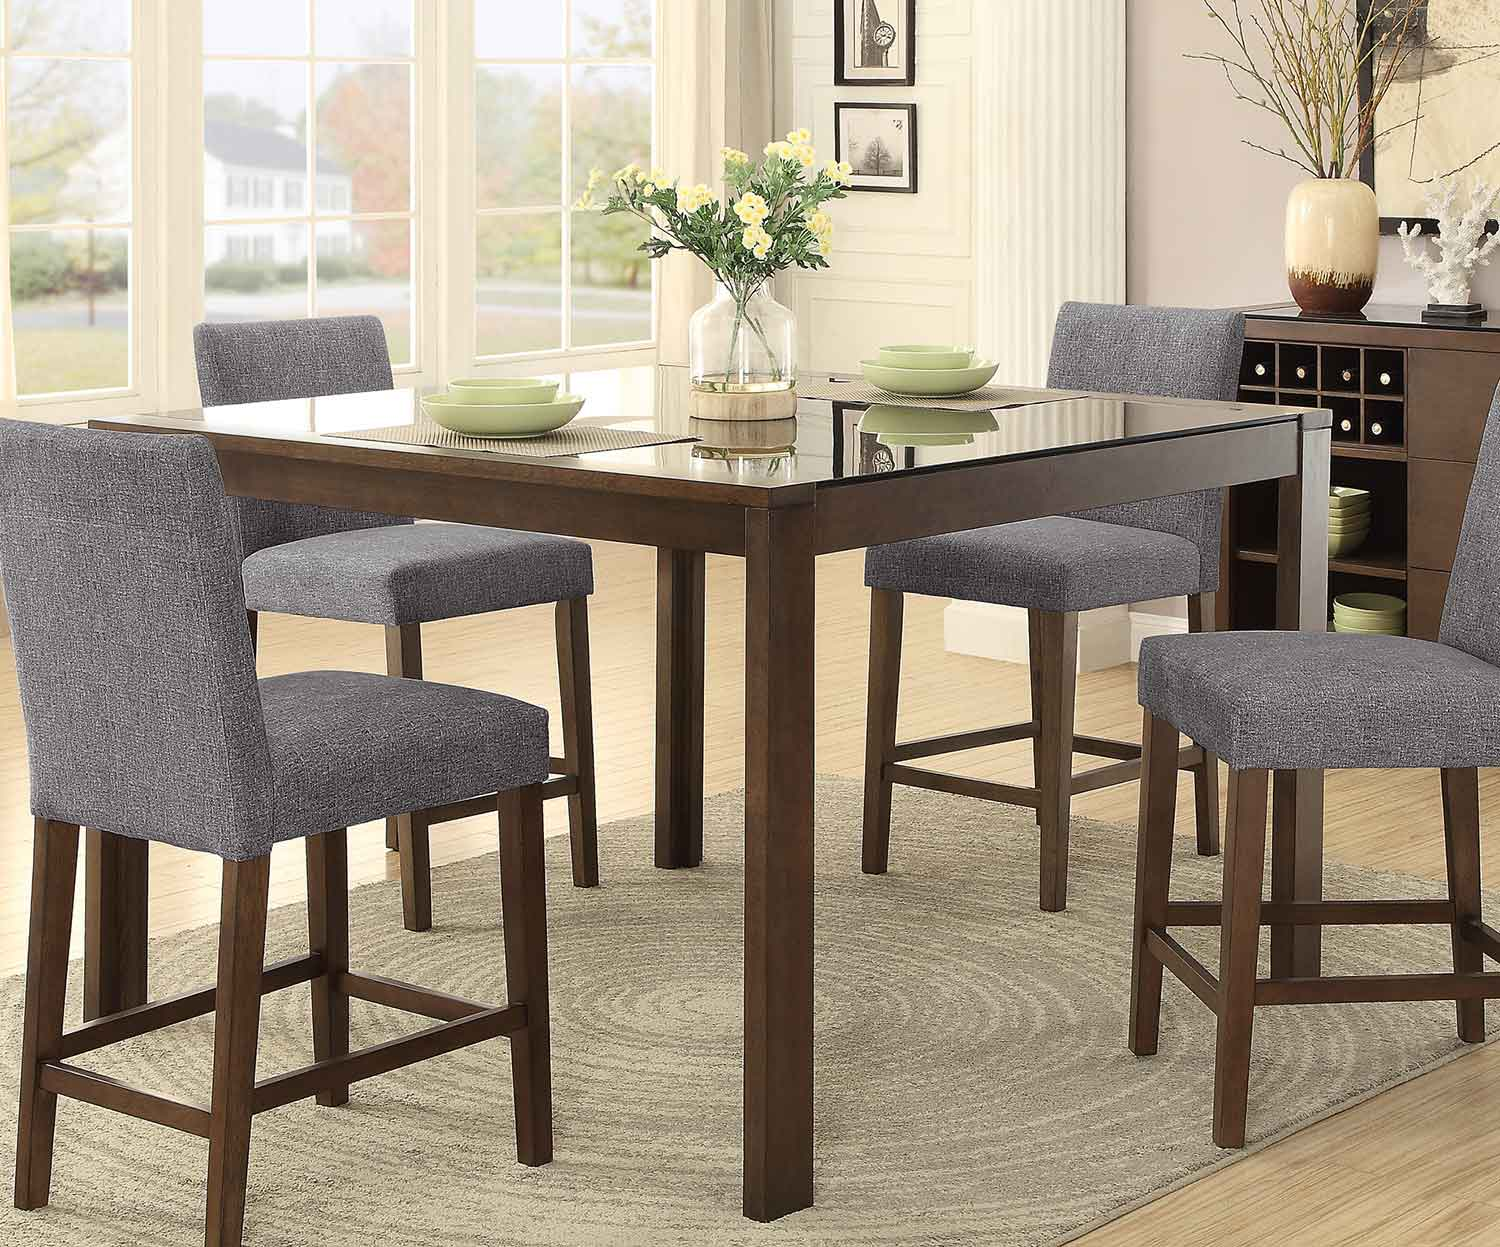 Counter Height Glass Dining Table : ... Counter Height Dining Table with Black Glass Insert - Brown 54 ? 54